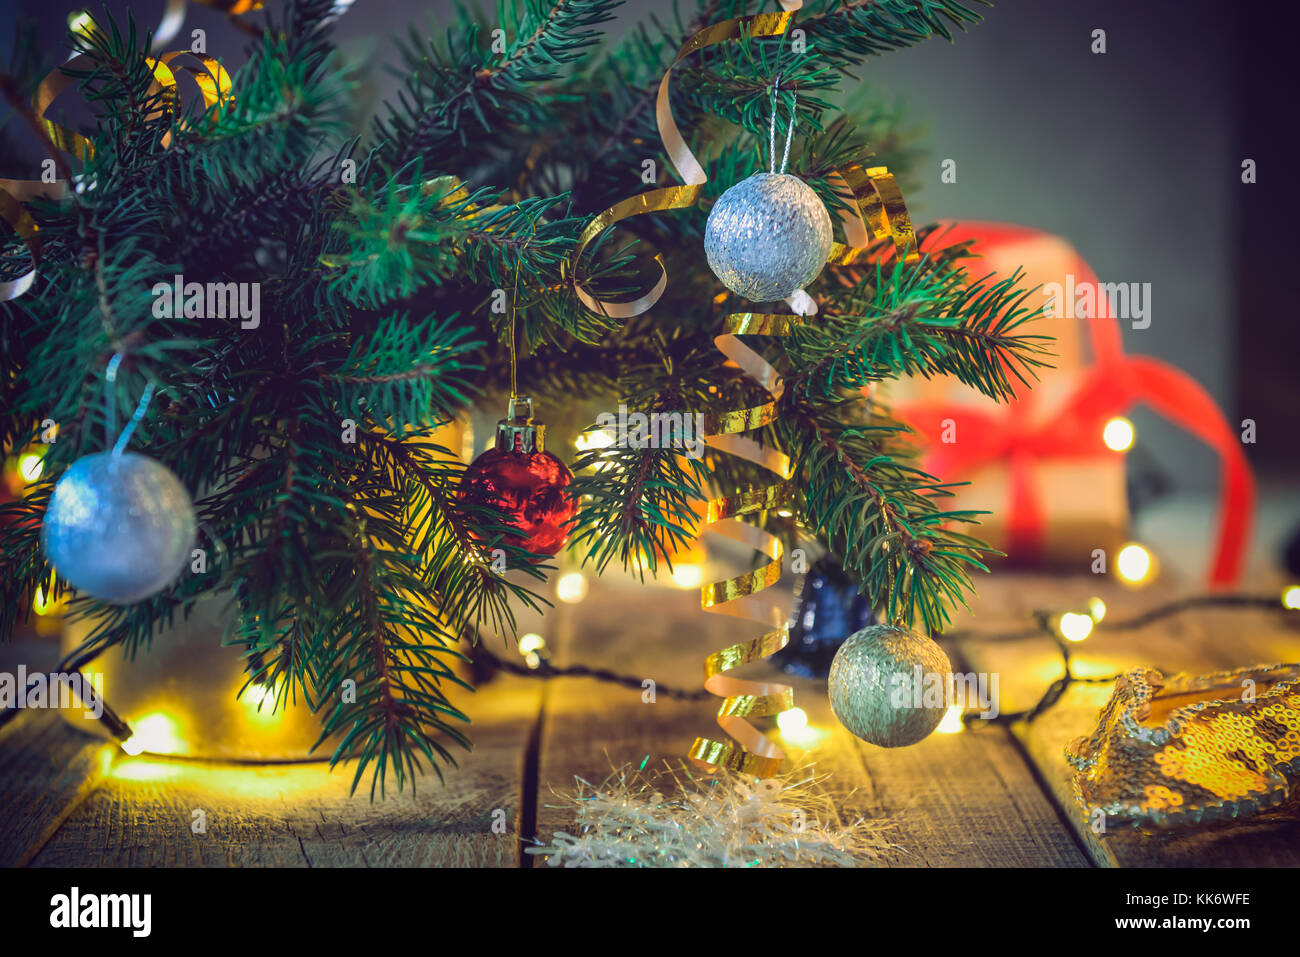 composition of christmas tree in vase with decorations gifts and lights on the wooden vintage table retro style christmas background soft selective